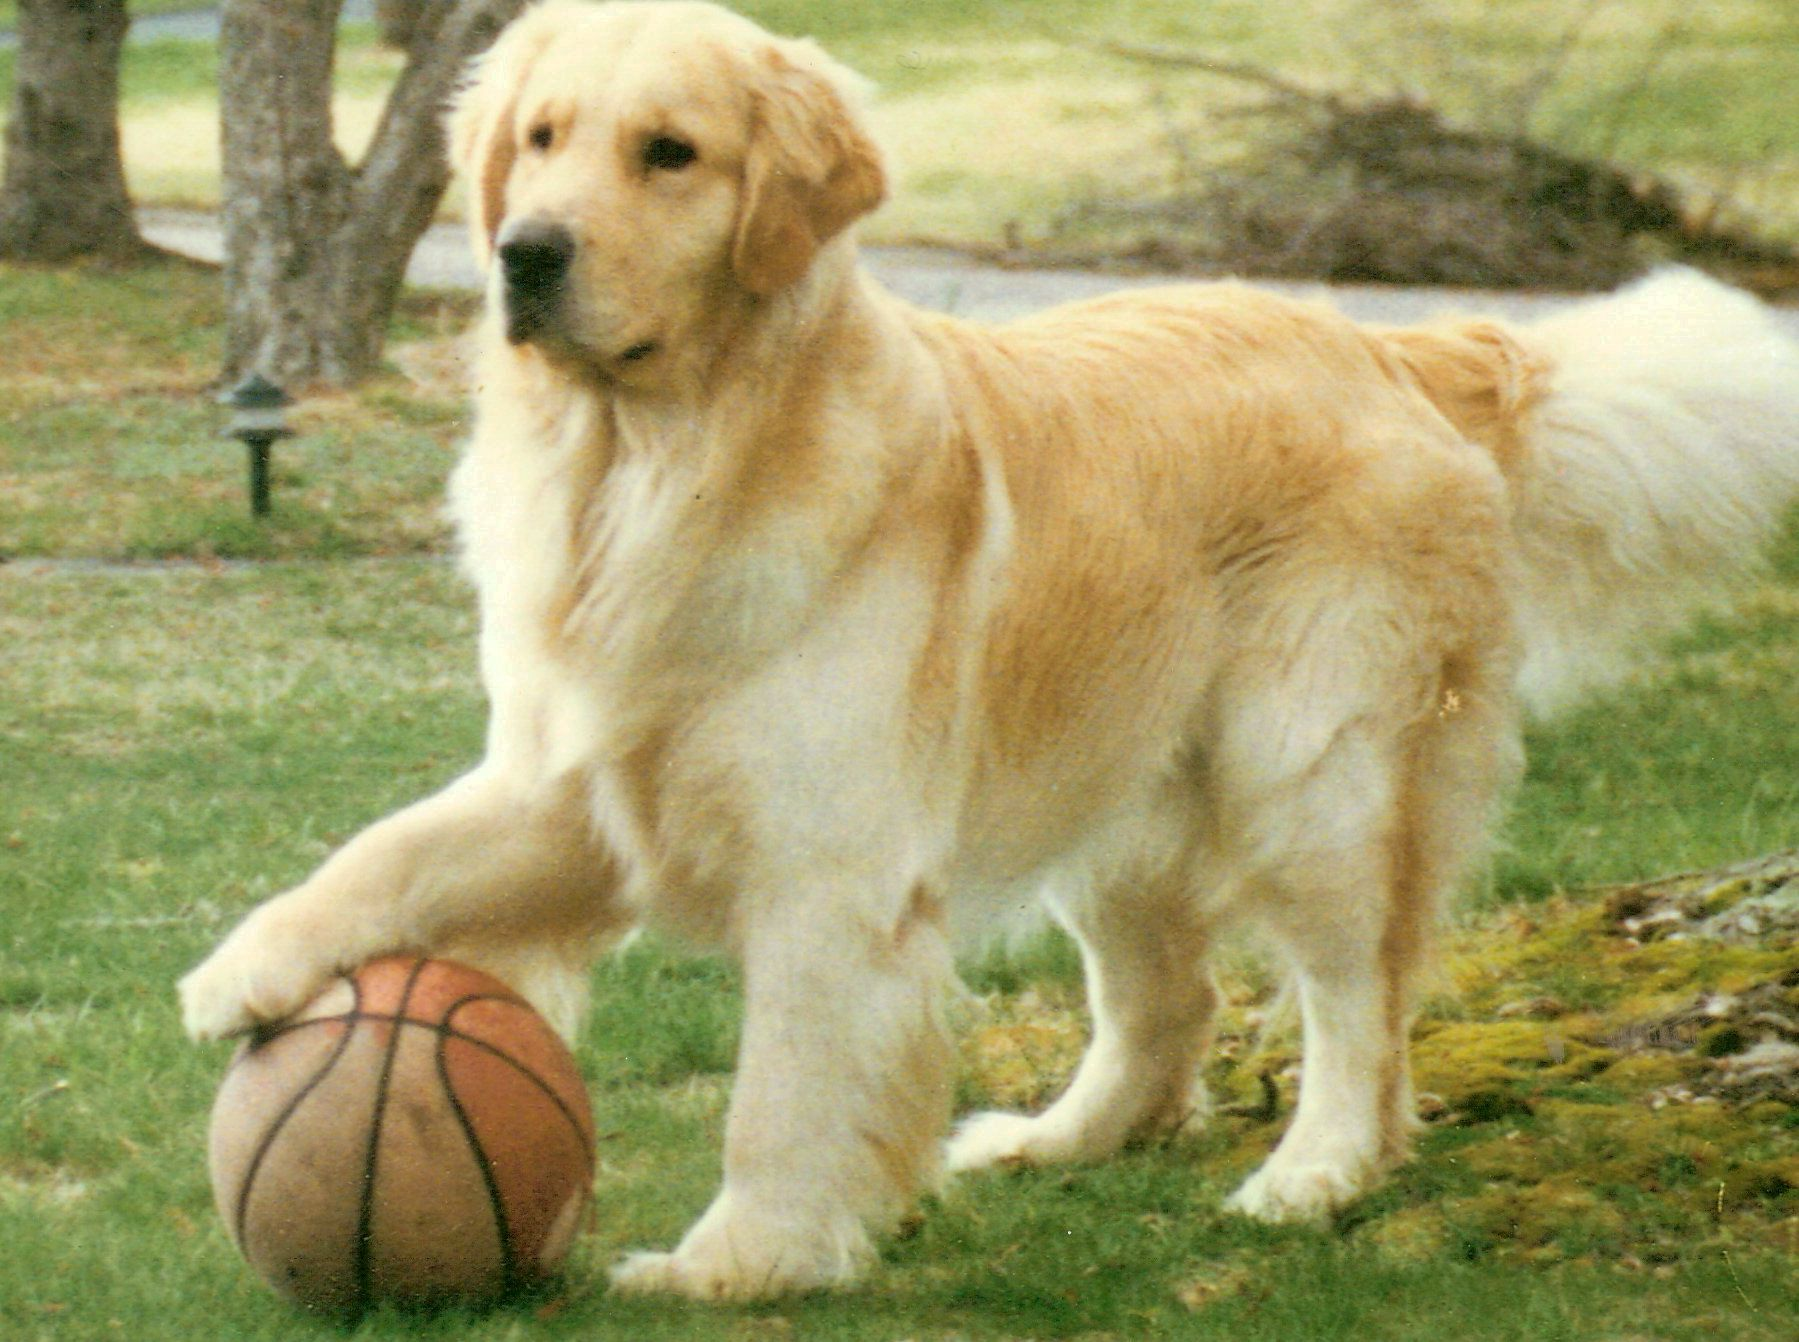 Oakleaf Goldens Golden Retrievers South Carolina Golden